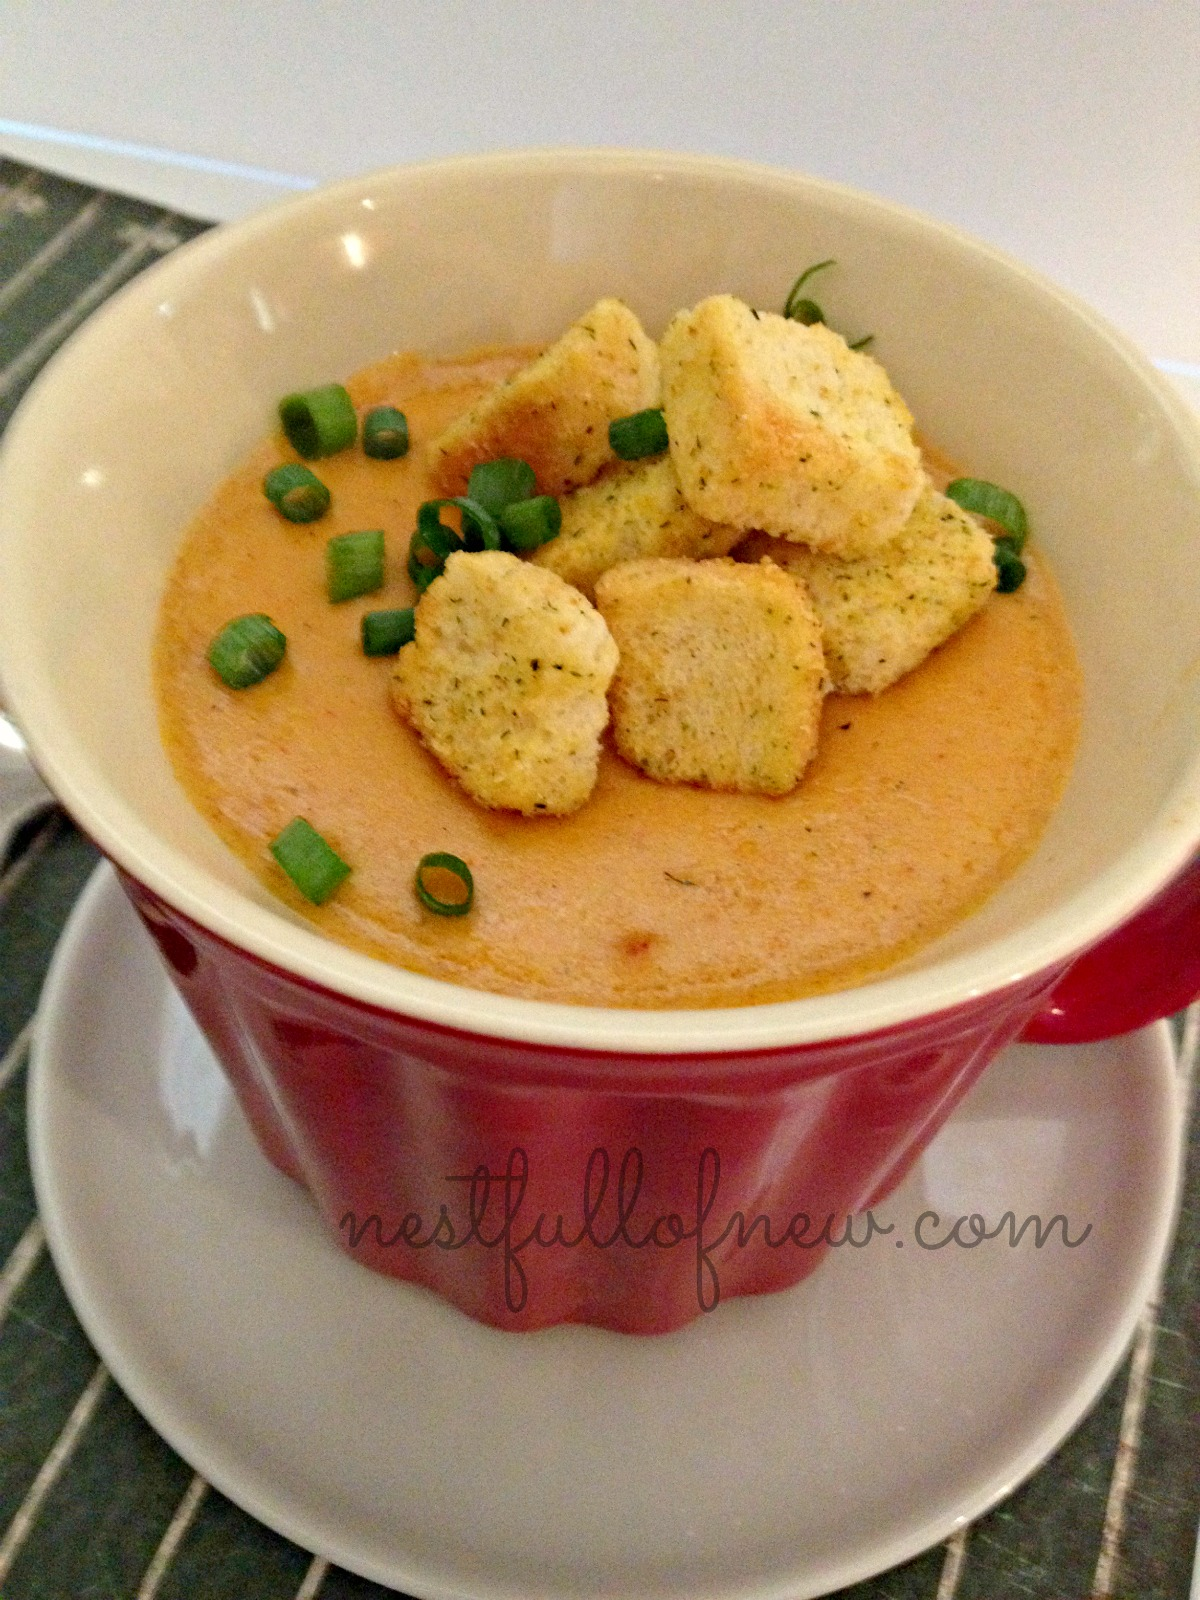 Beer Cheese Soup - Quick and Easy! - Nest Full of New